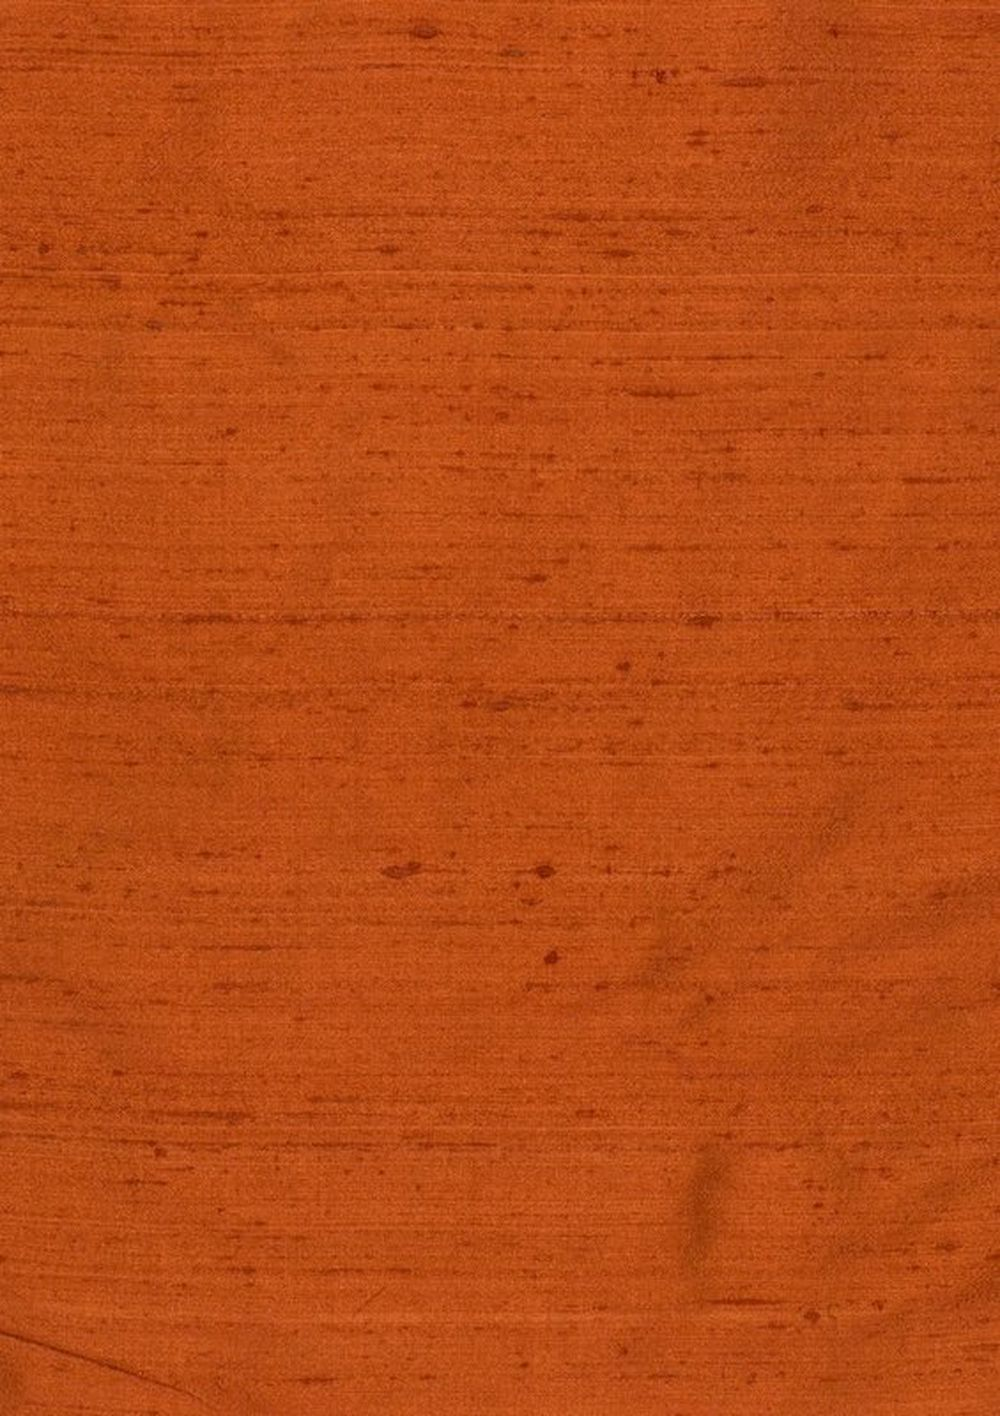 Photo of the fabric Indulgence Paprika-182 swatch by Zepel. Use for Curtains. Style of Plain